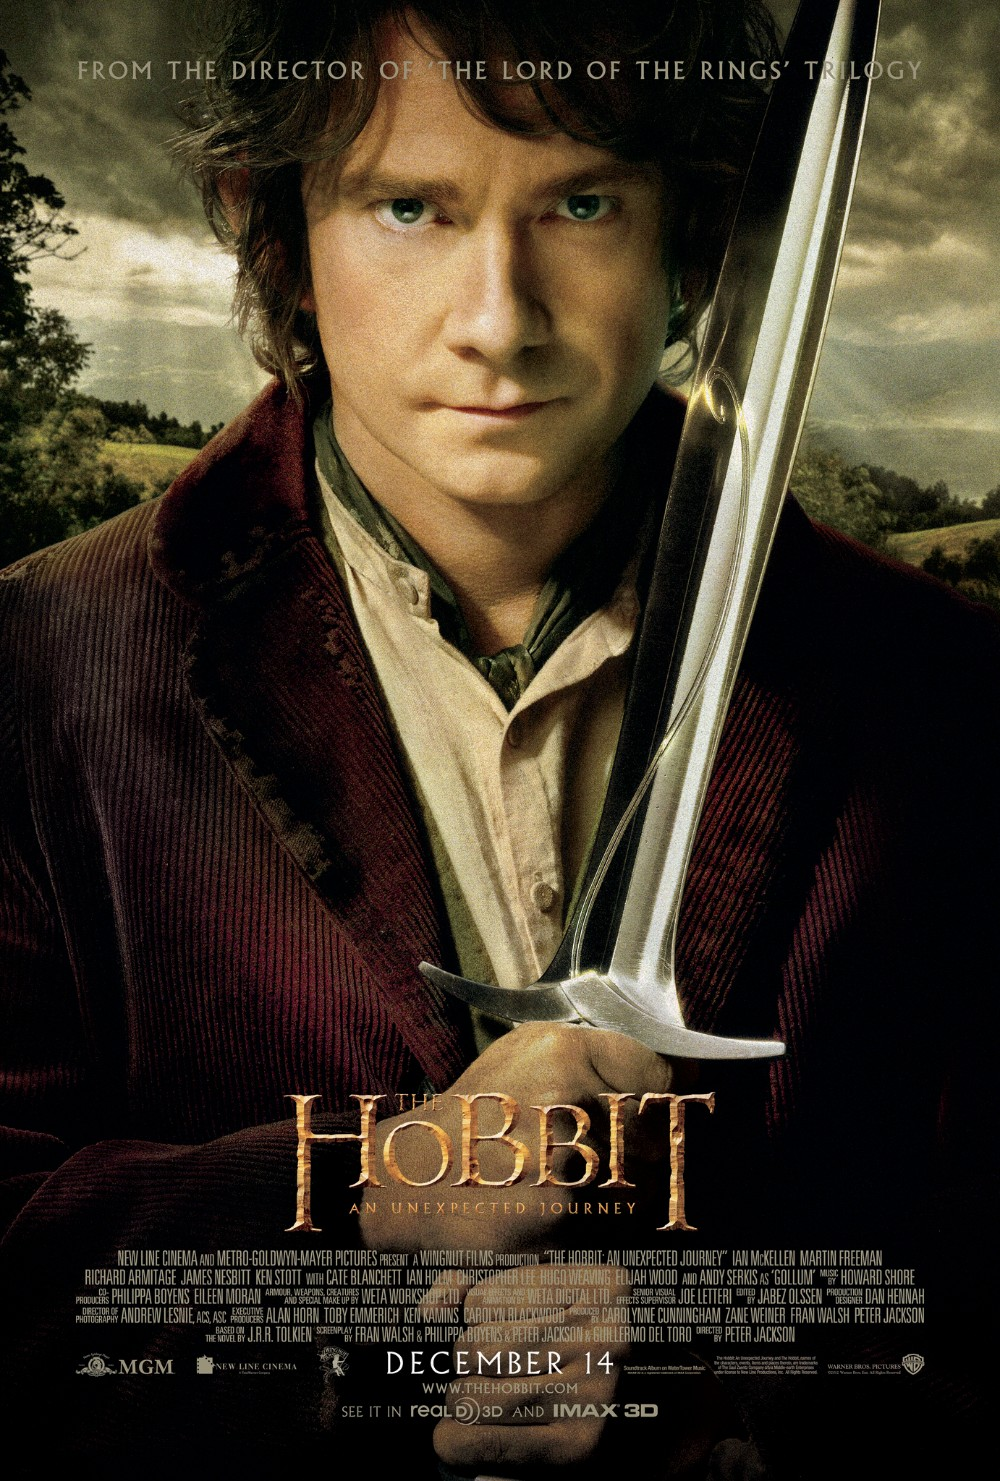 The Hobbit An Unexpected Journey 2012 Extended Edition 720p BluRay DTS x264-TayTO